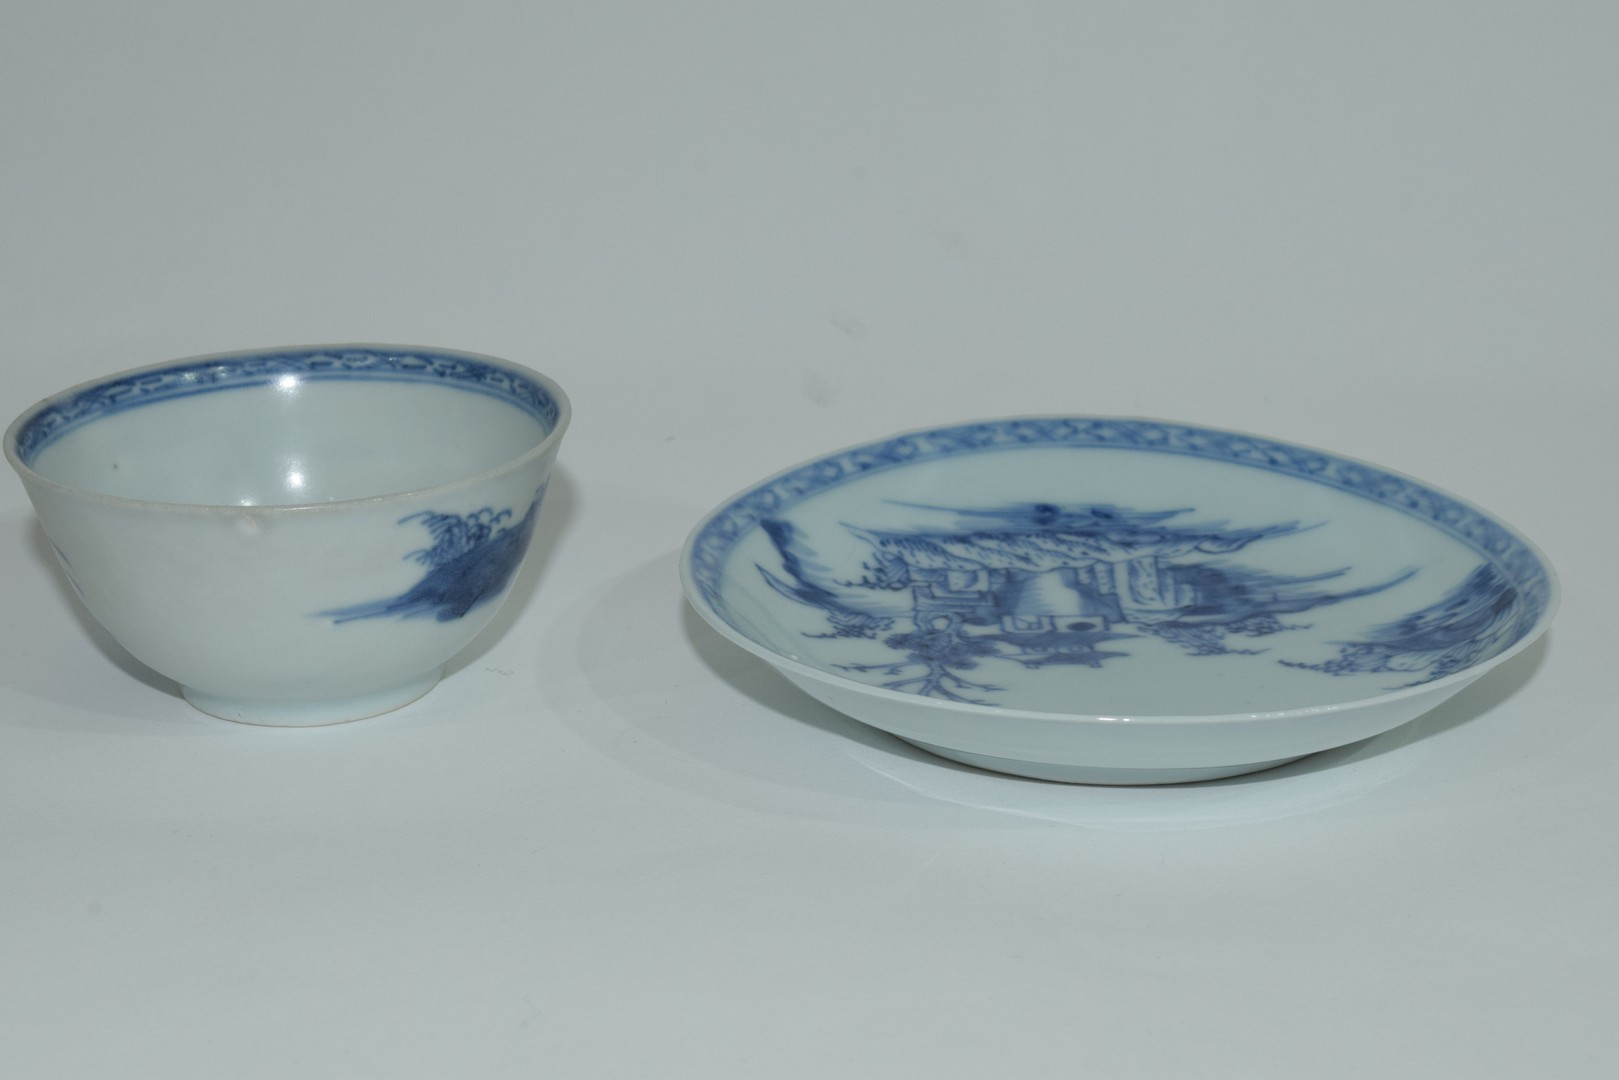 18th century Chinese porcelain Nanking Cargo tea bowl and saucer - Image 7 of 15